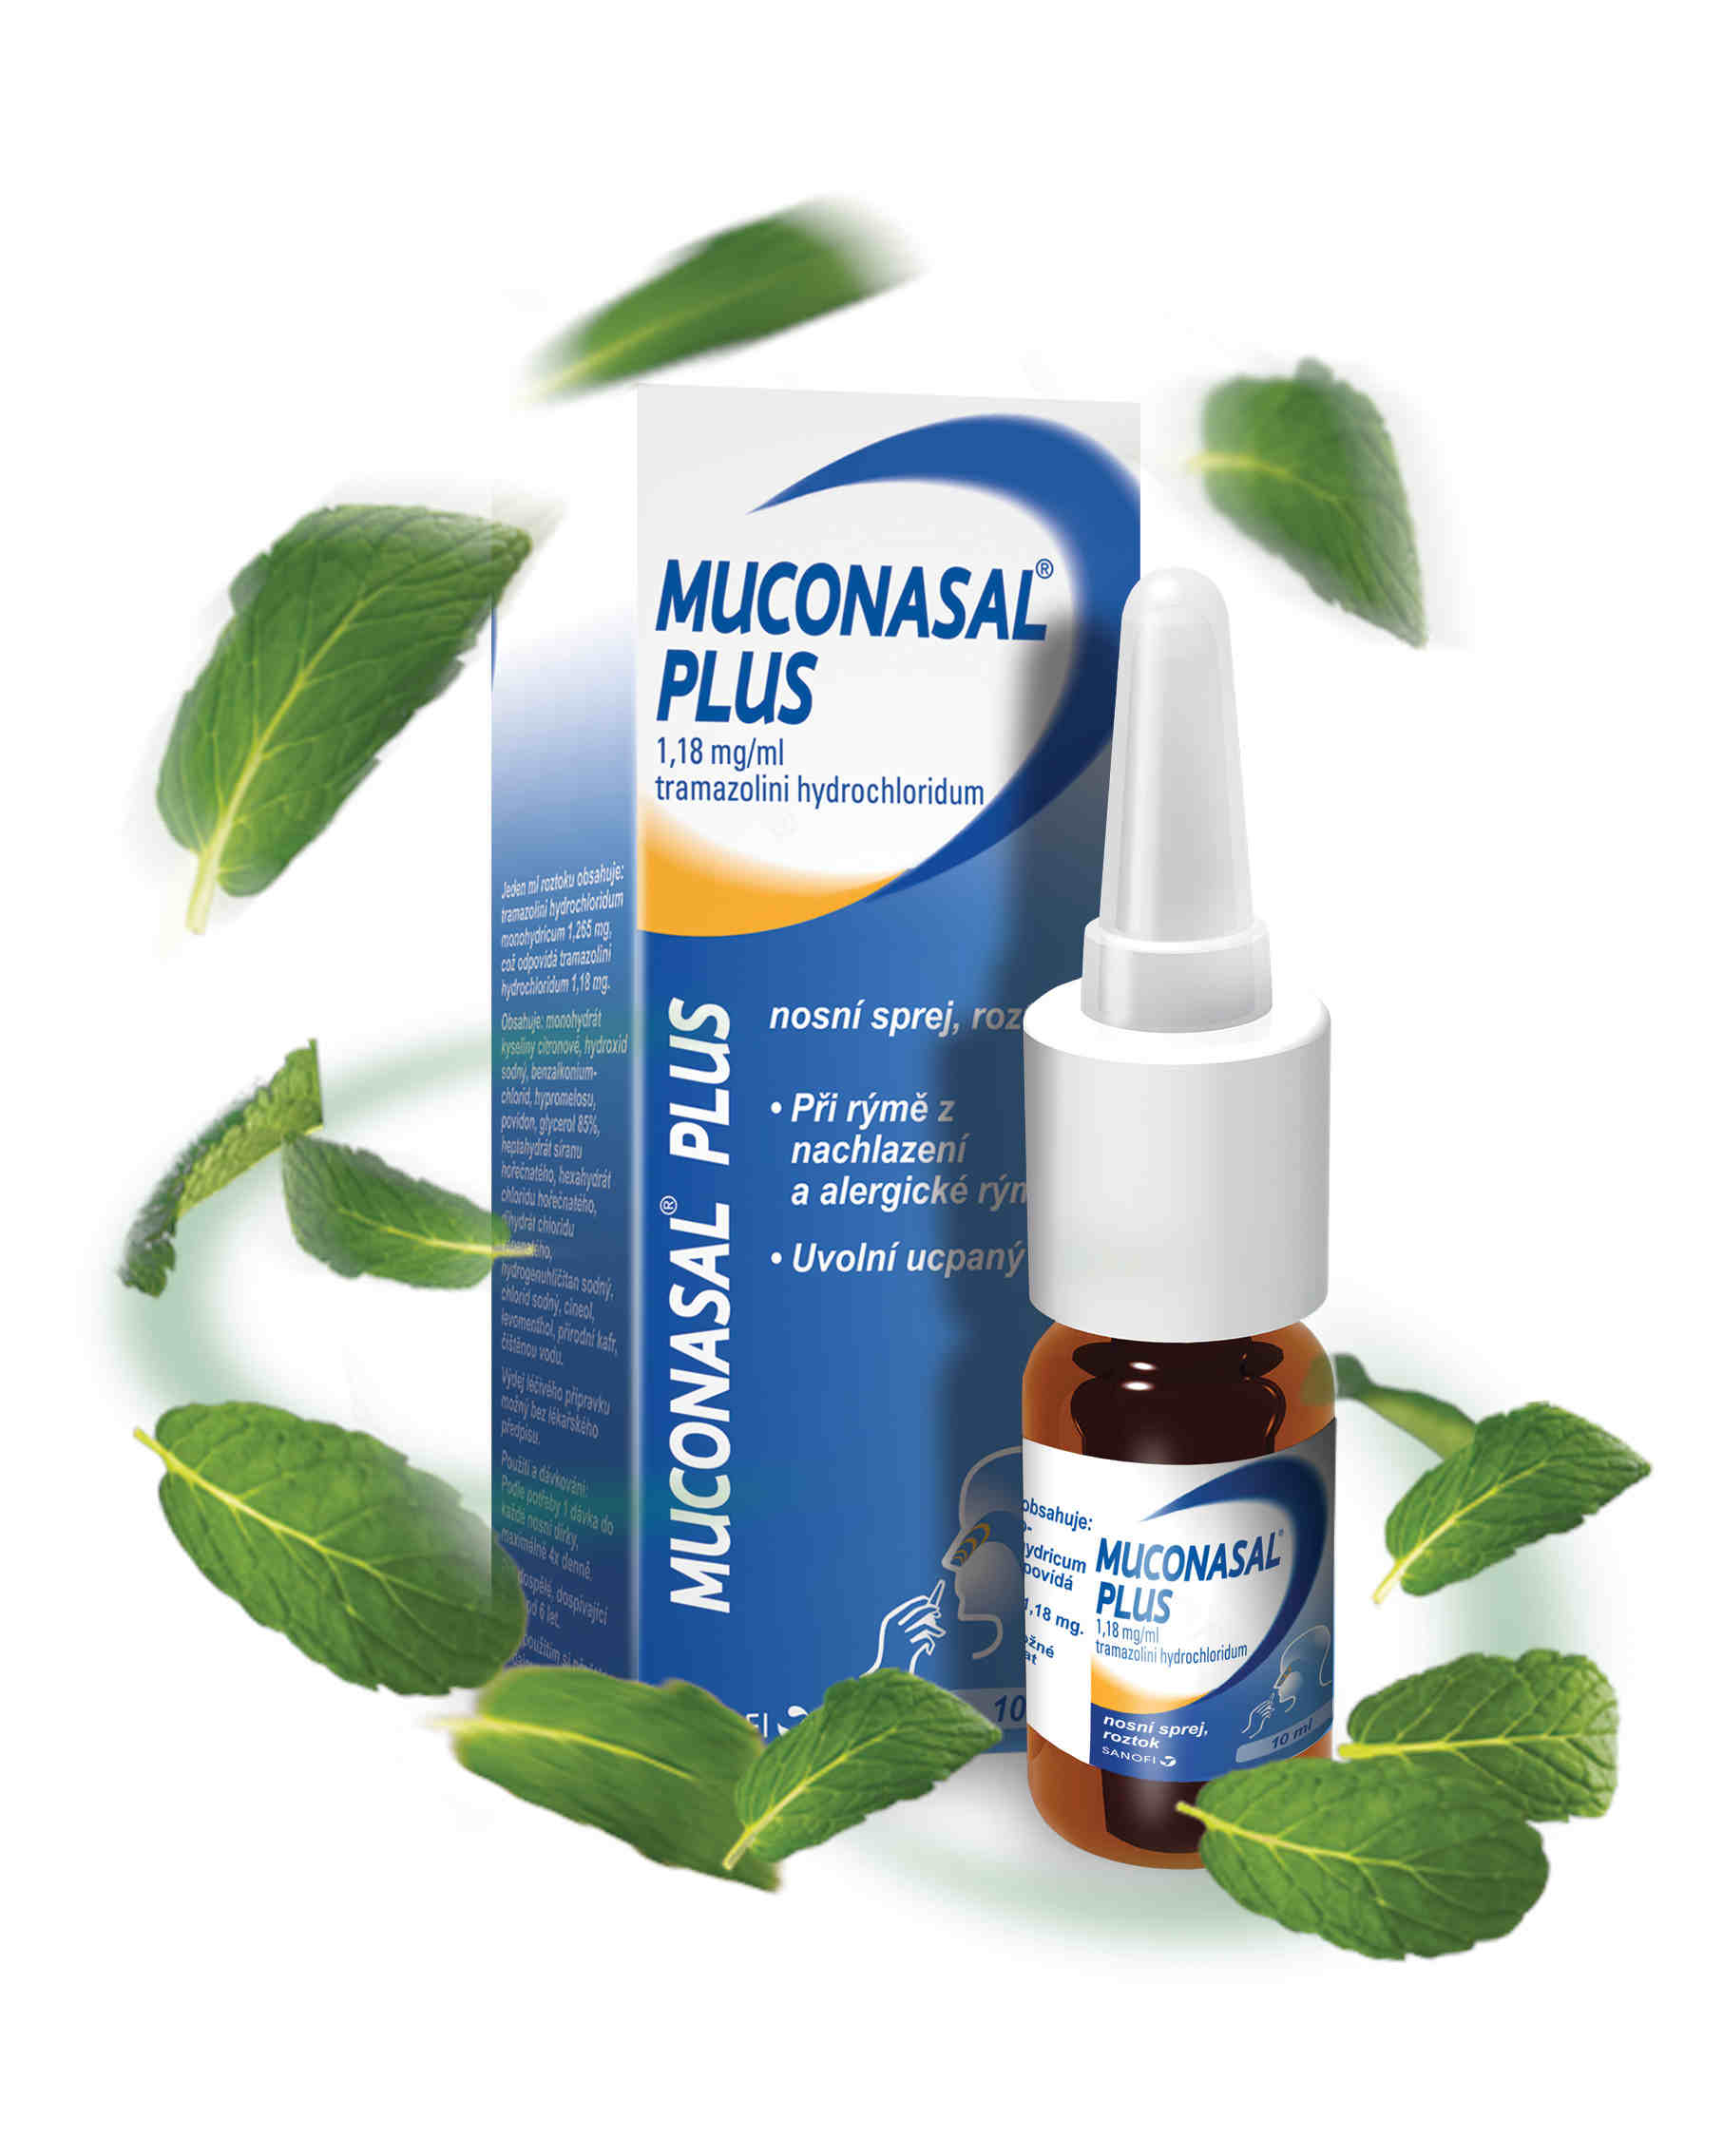 Muconasal® Plus 1.18mg/ml nosní sprej 10ml